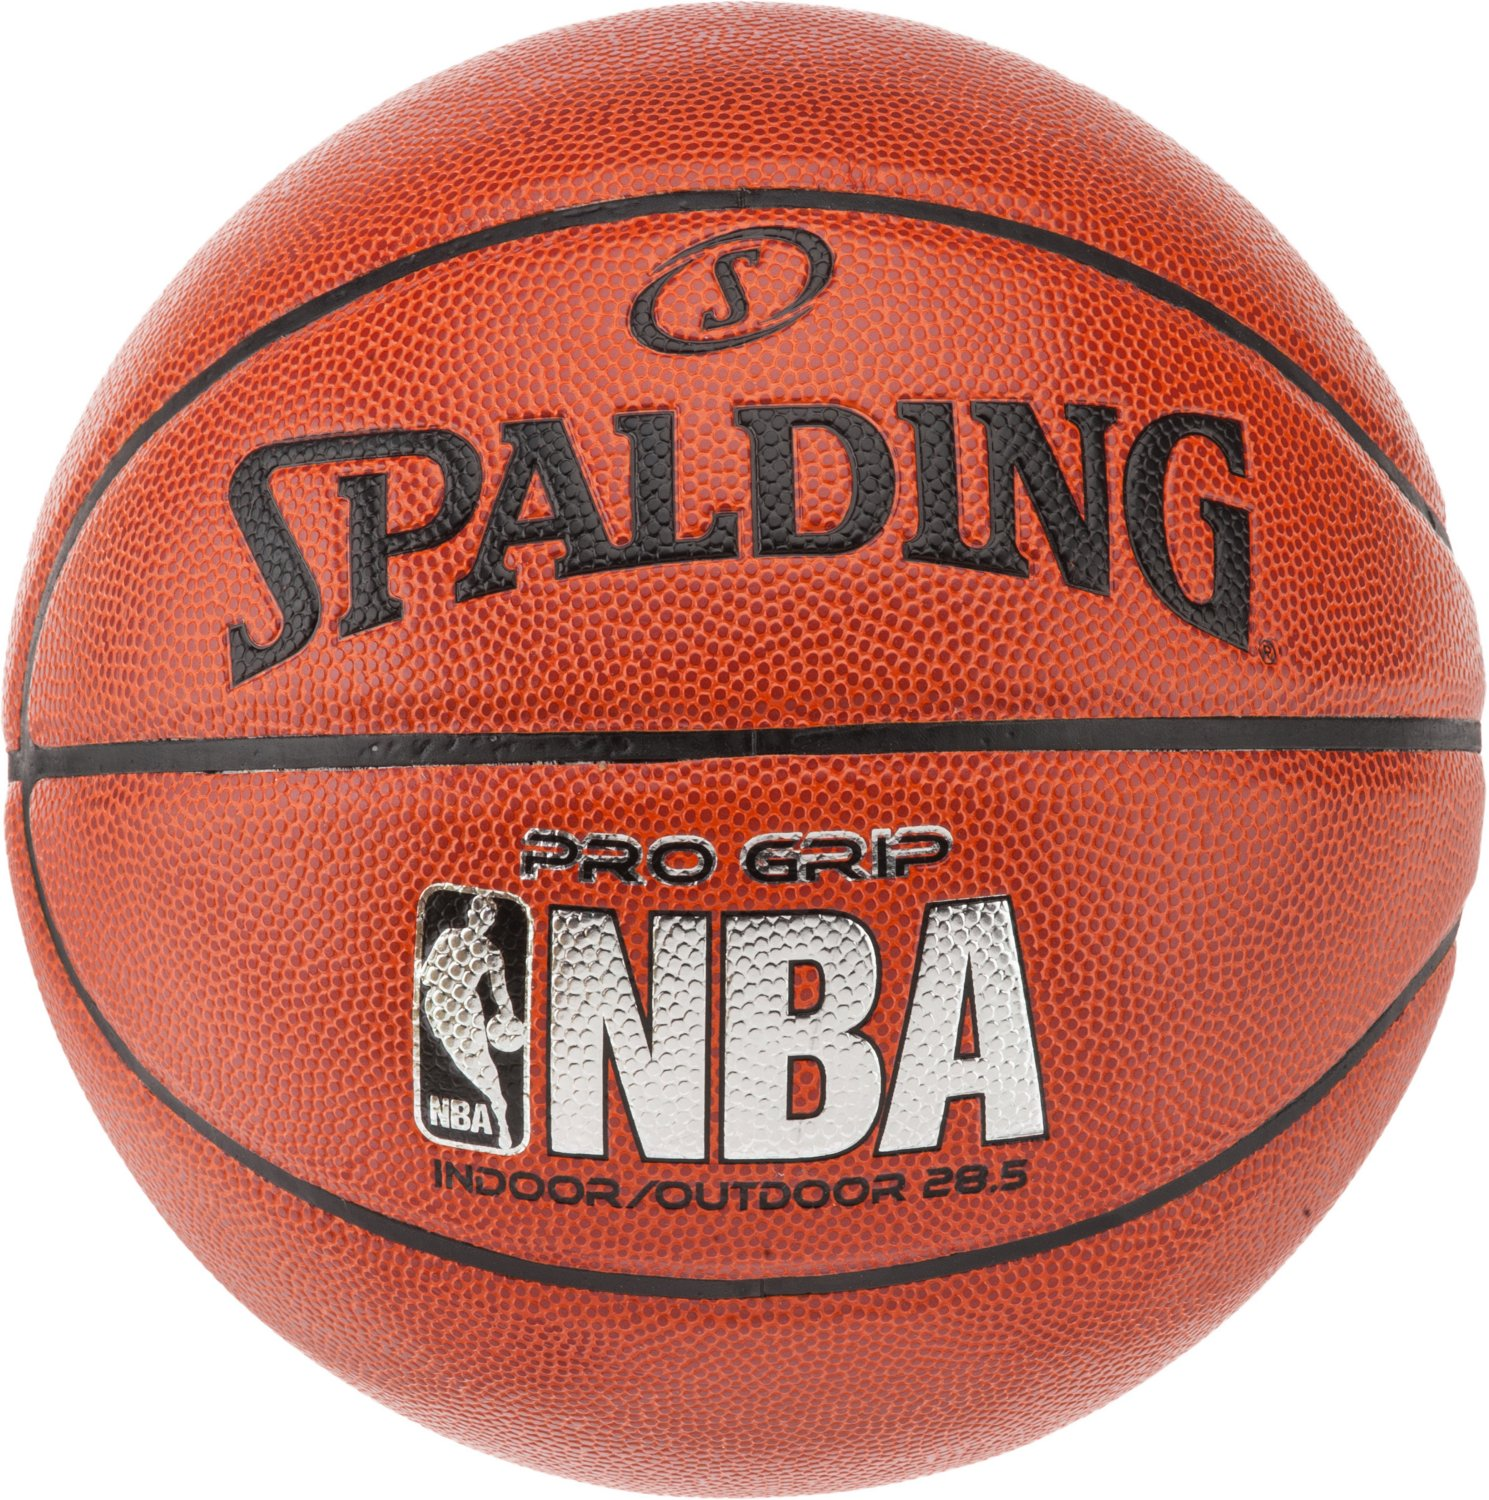 4f305f08d Display product reviews for Spalding NBA Pro Grip Indoor/Outdoor Composite  Basketball